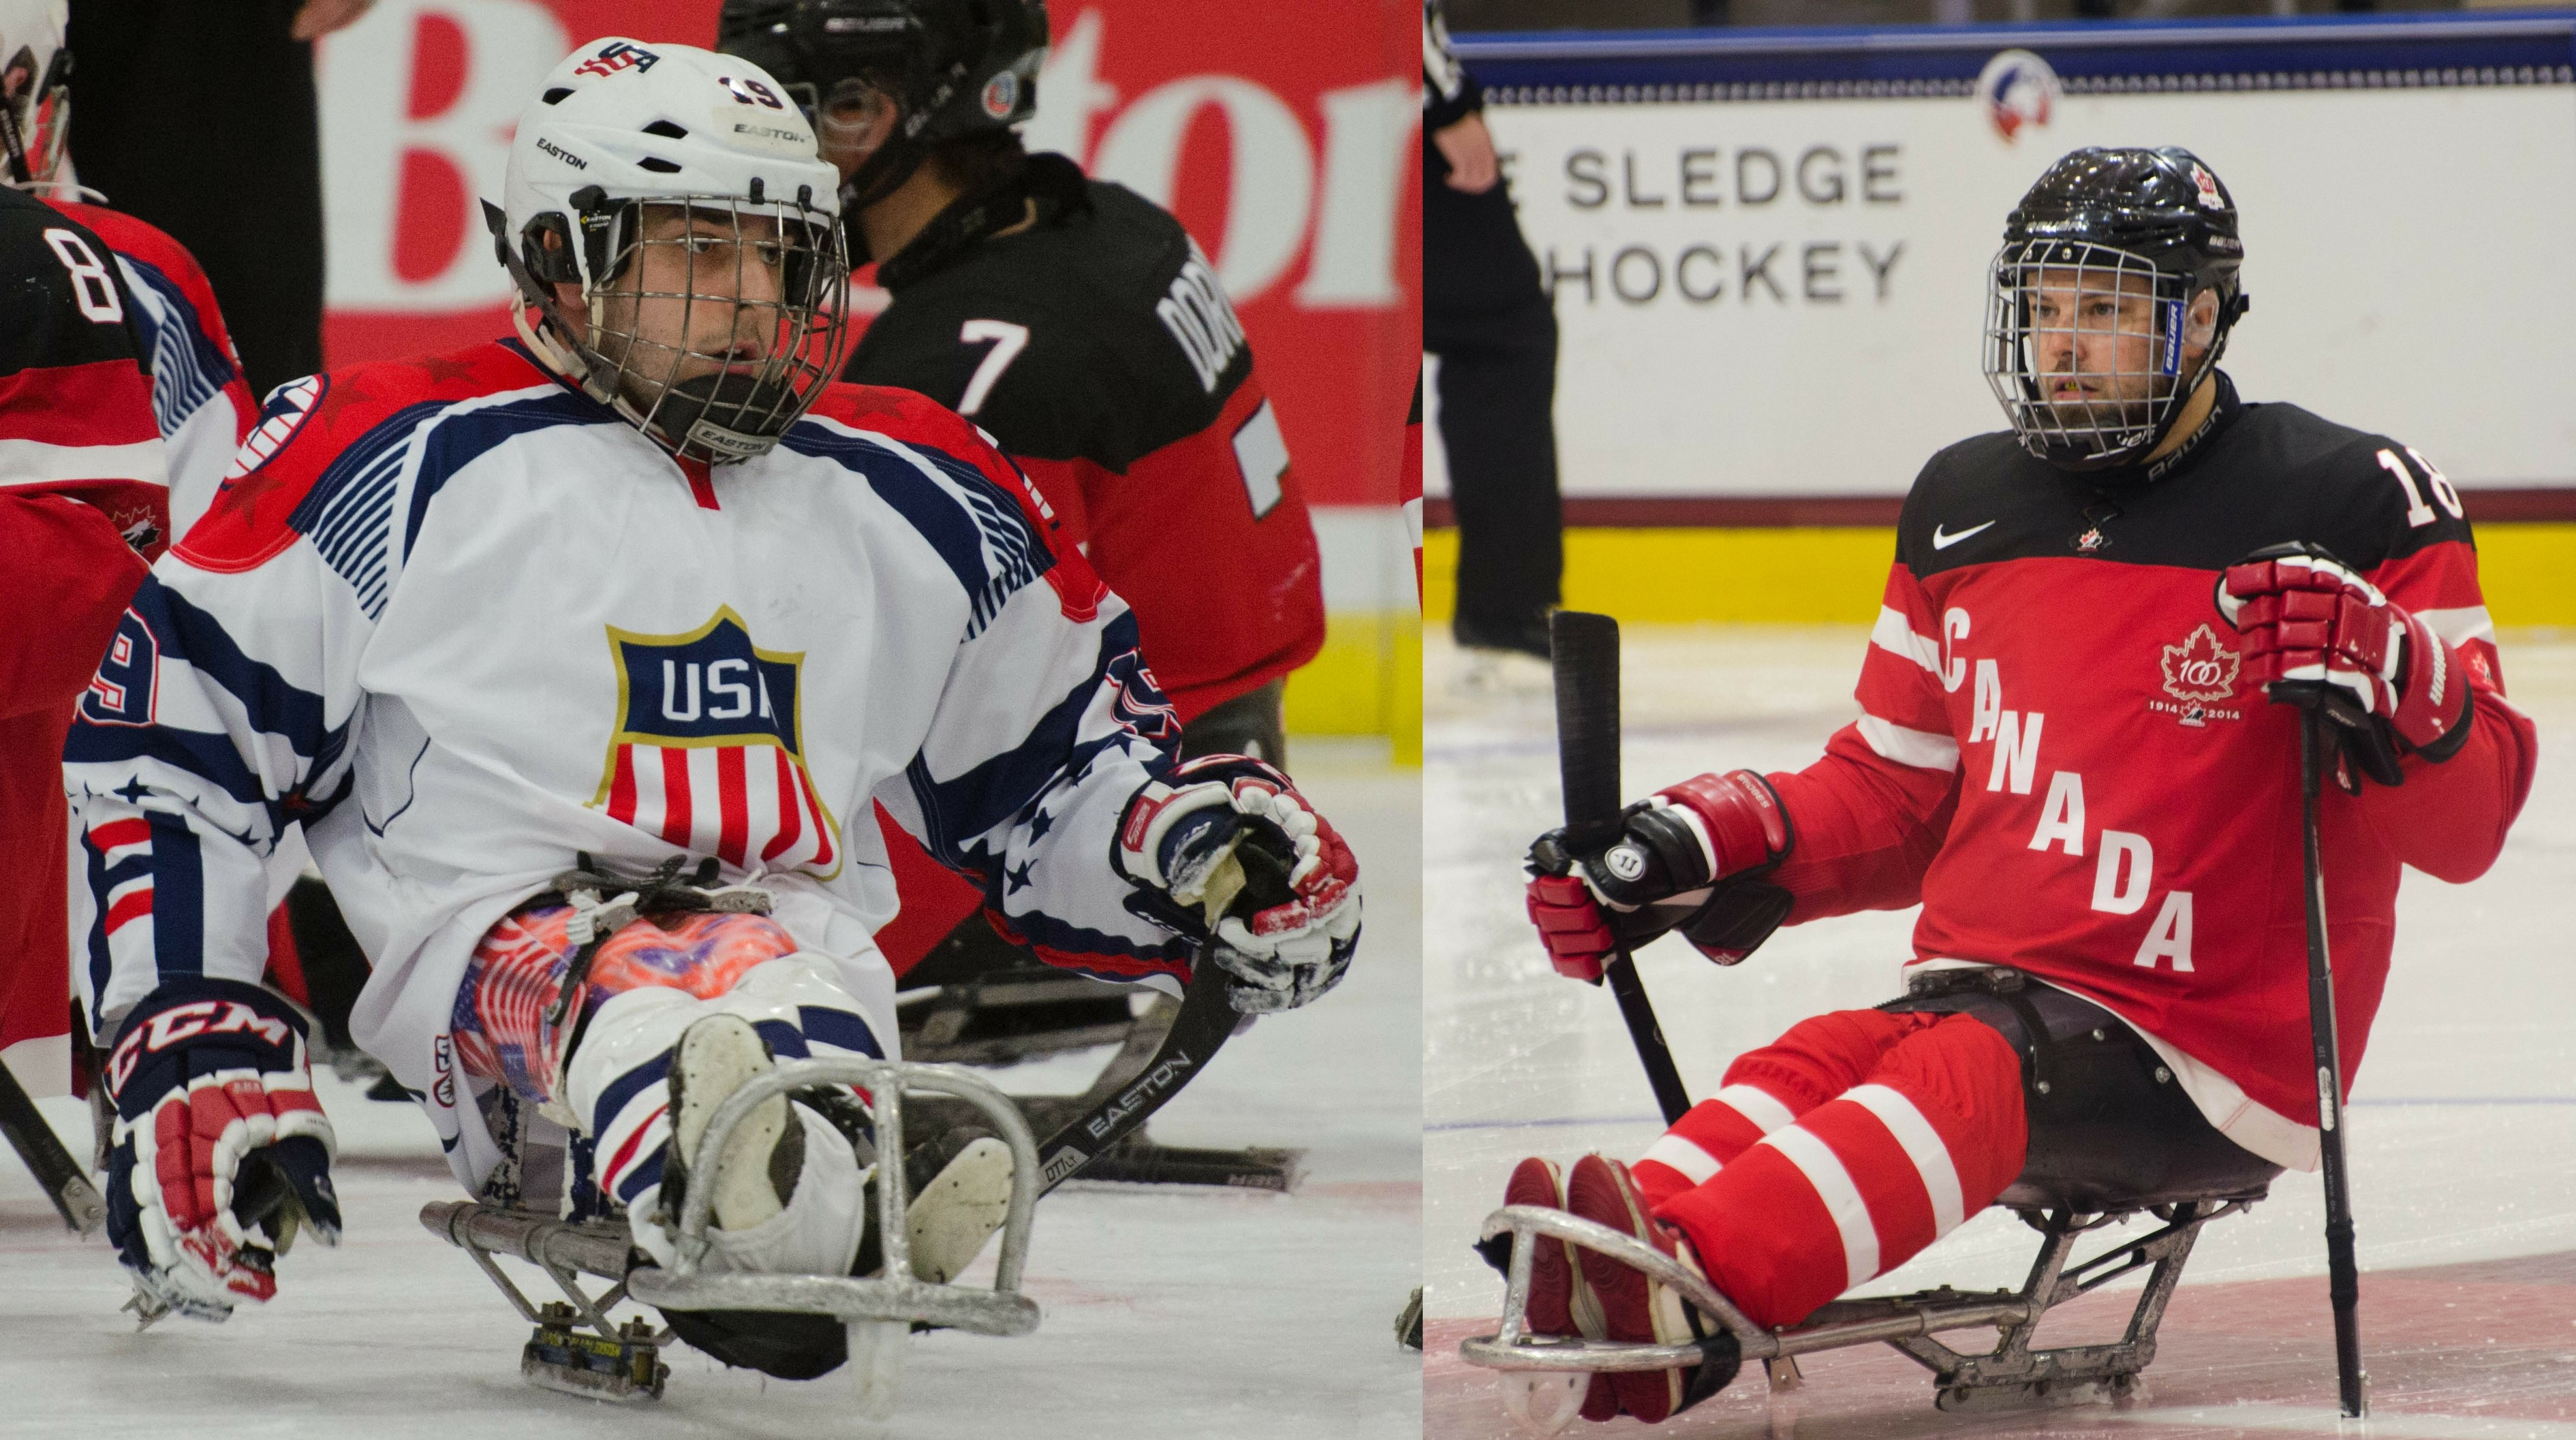 Para ice hockey players Kevin McKee of team USA and Billy Bridges of team Canada